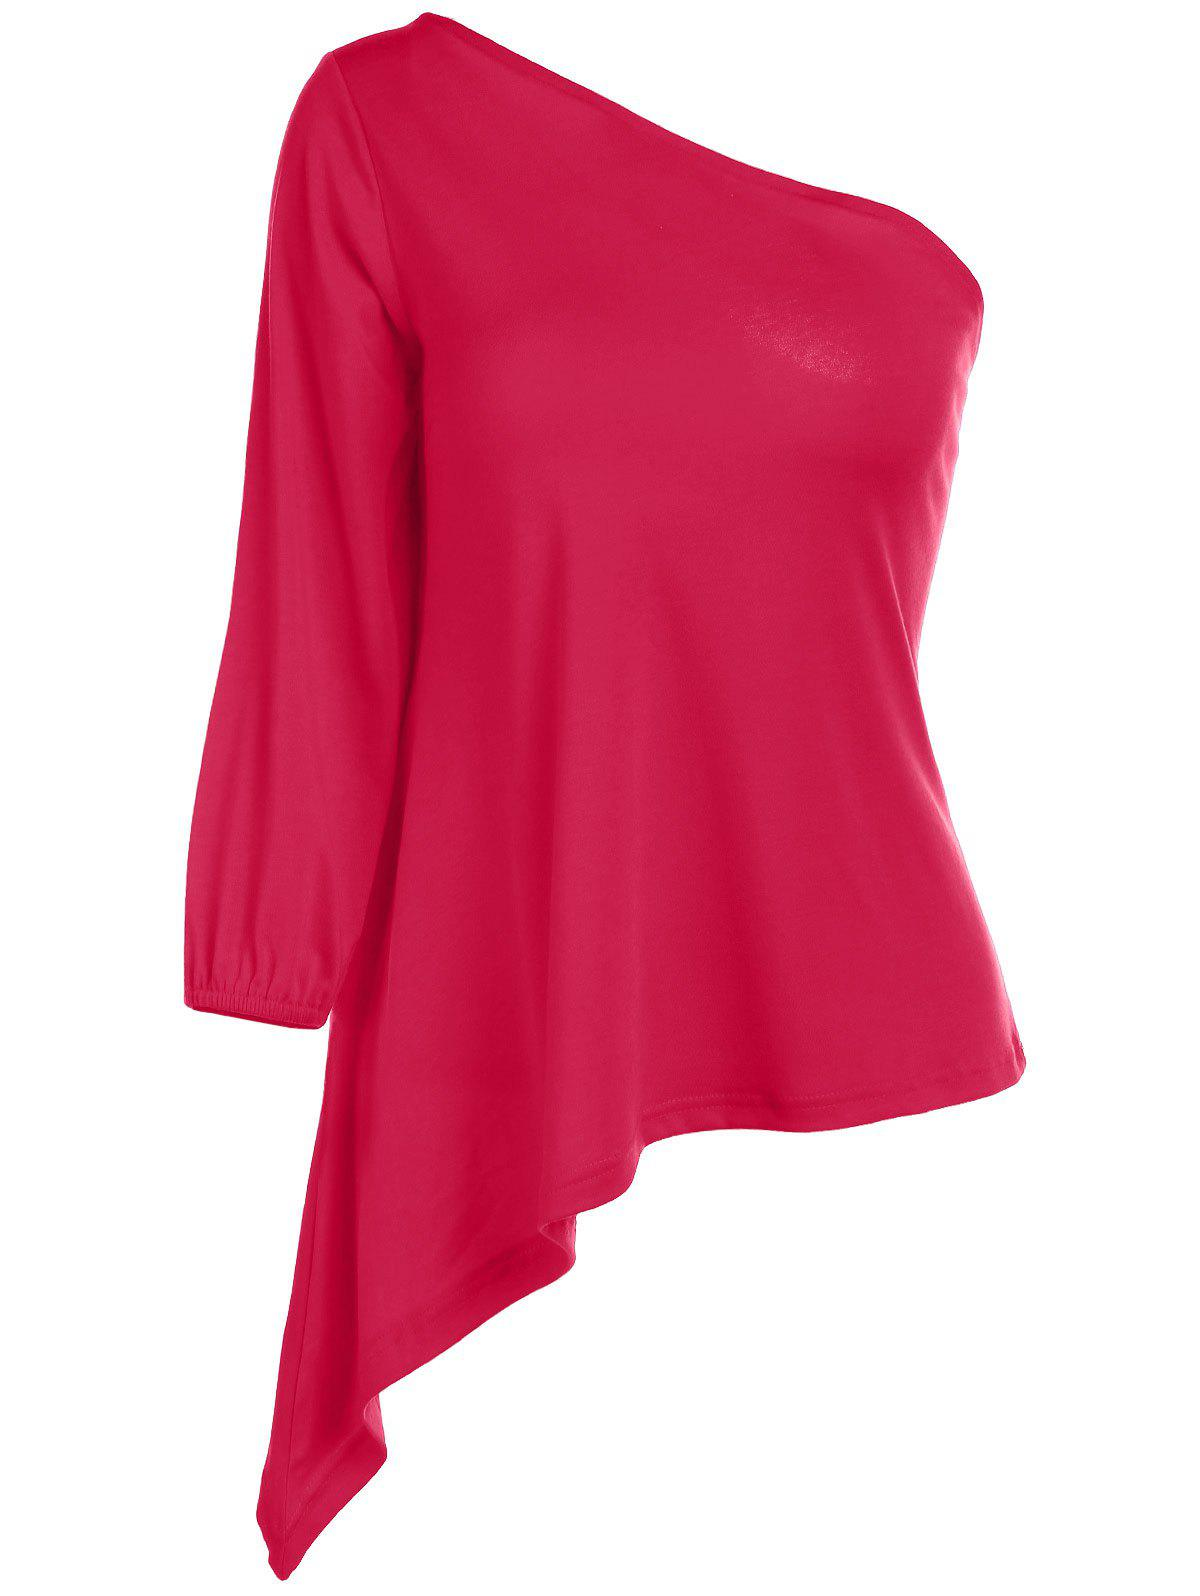 Sexy Women's One Shoulder 3/4 Sleeve Red T-Shirt